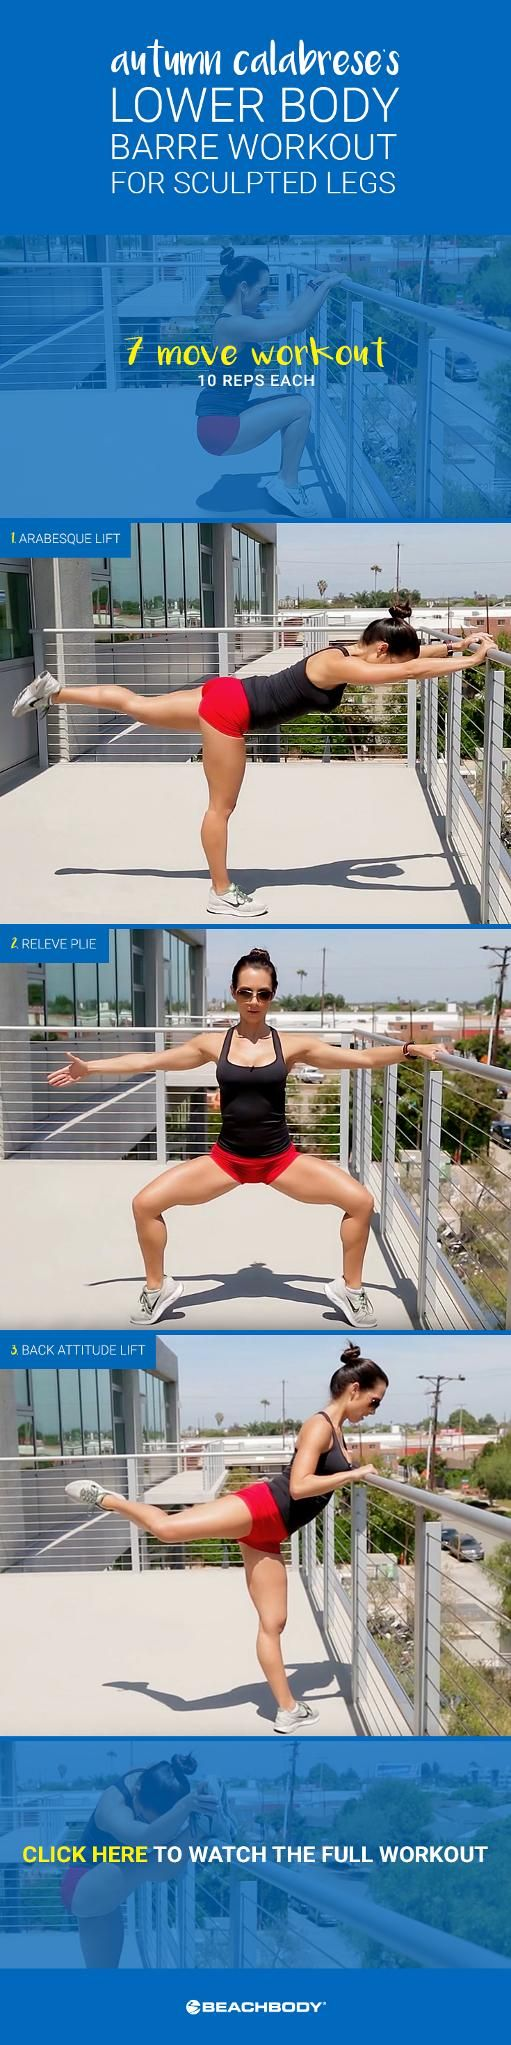 Sculpt your lower body with a muscle-toning barre workout from 21 Day Fix and The Master's Hammer and Chisel-creator Autumn Calabrese! In 5 minutes, tone your quads, hamstrings, calves, and booty with these moves! // fitness // leg workouts // butt workouts // lower body workouts // exercise // muscles // strength training // mini workouts // Beachbody // BeachbodyBlog.com